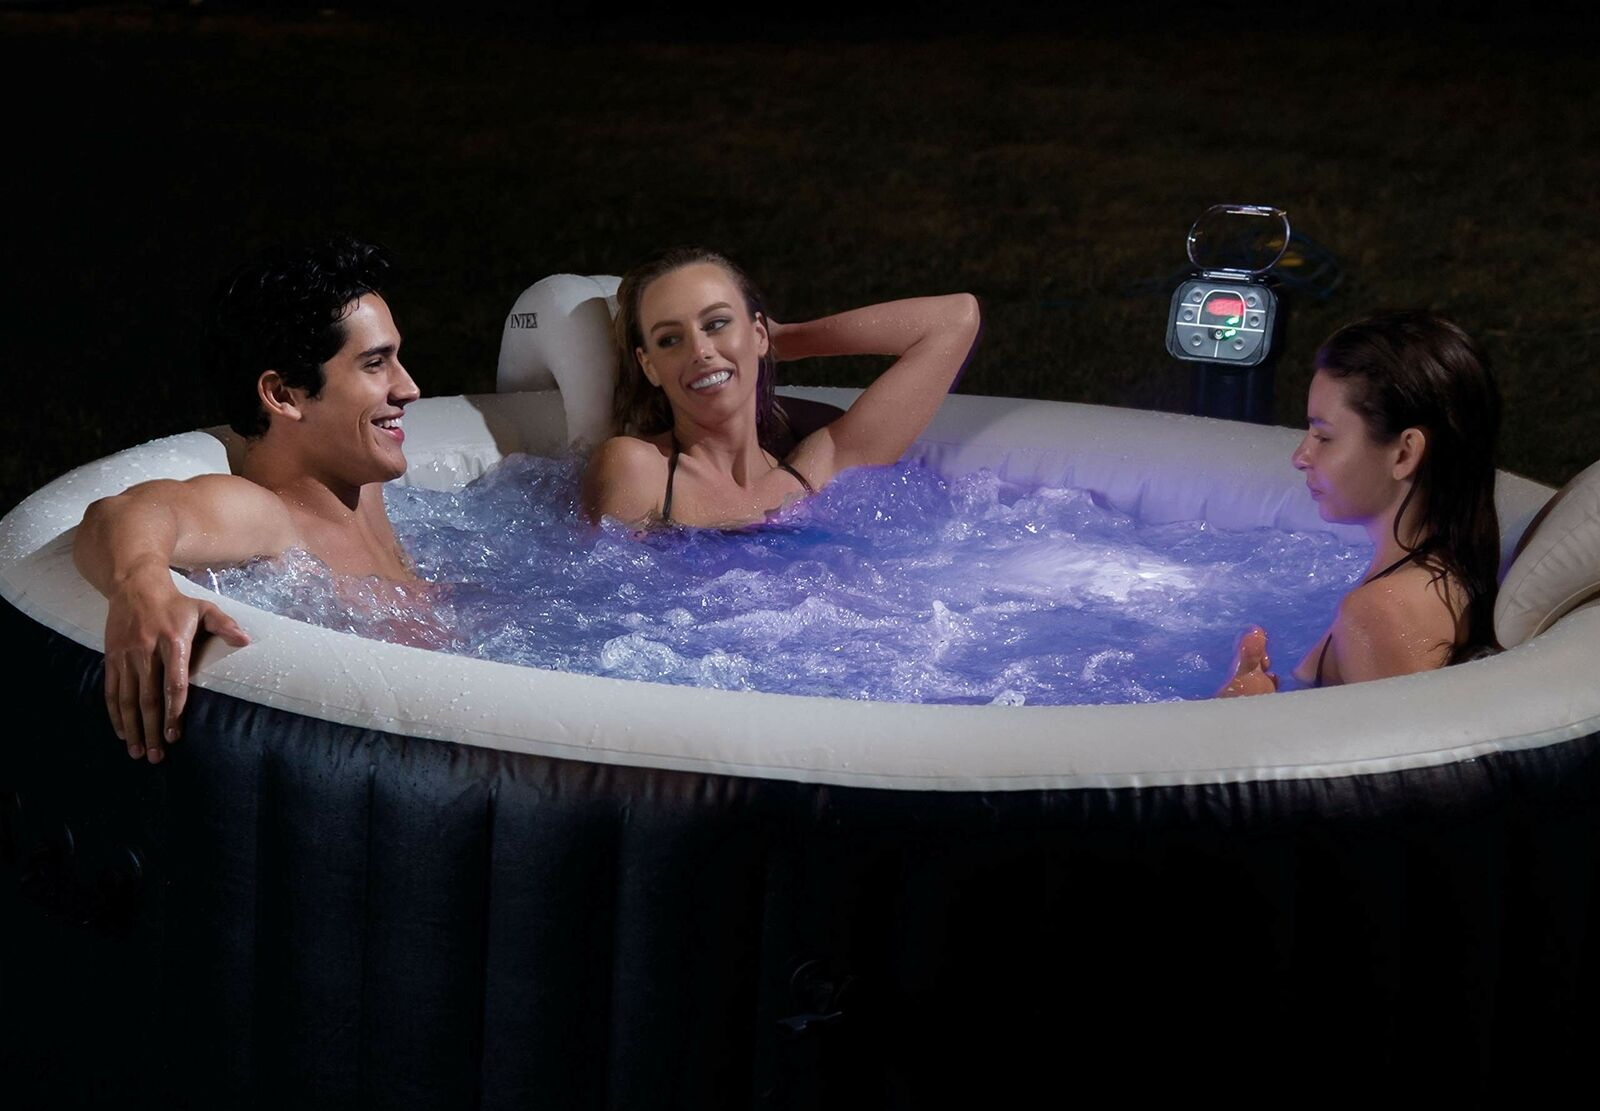 How To Maintain Your Inflatable Hot Tub For All Year Enjoyment